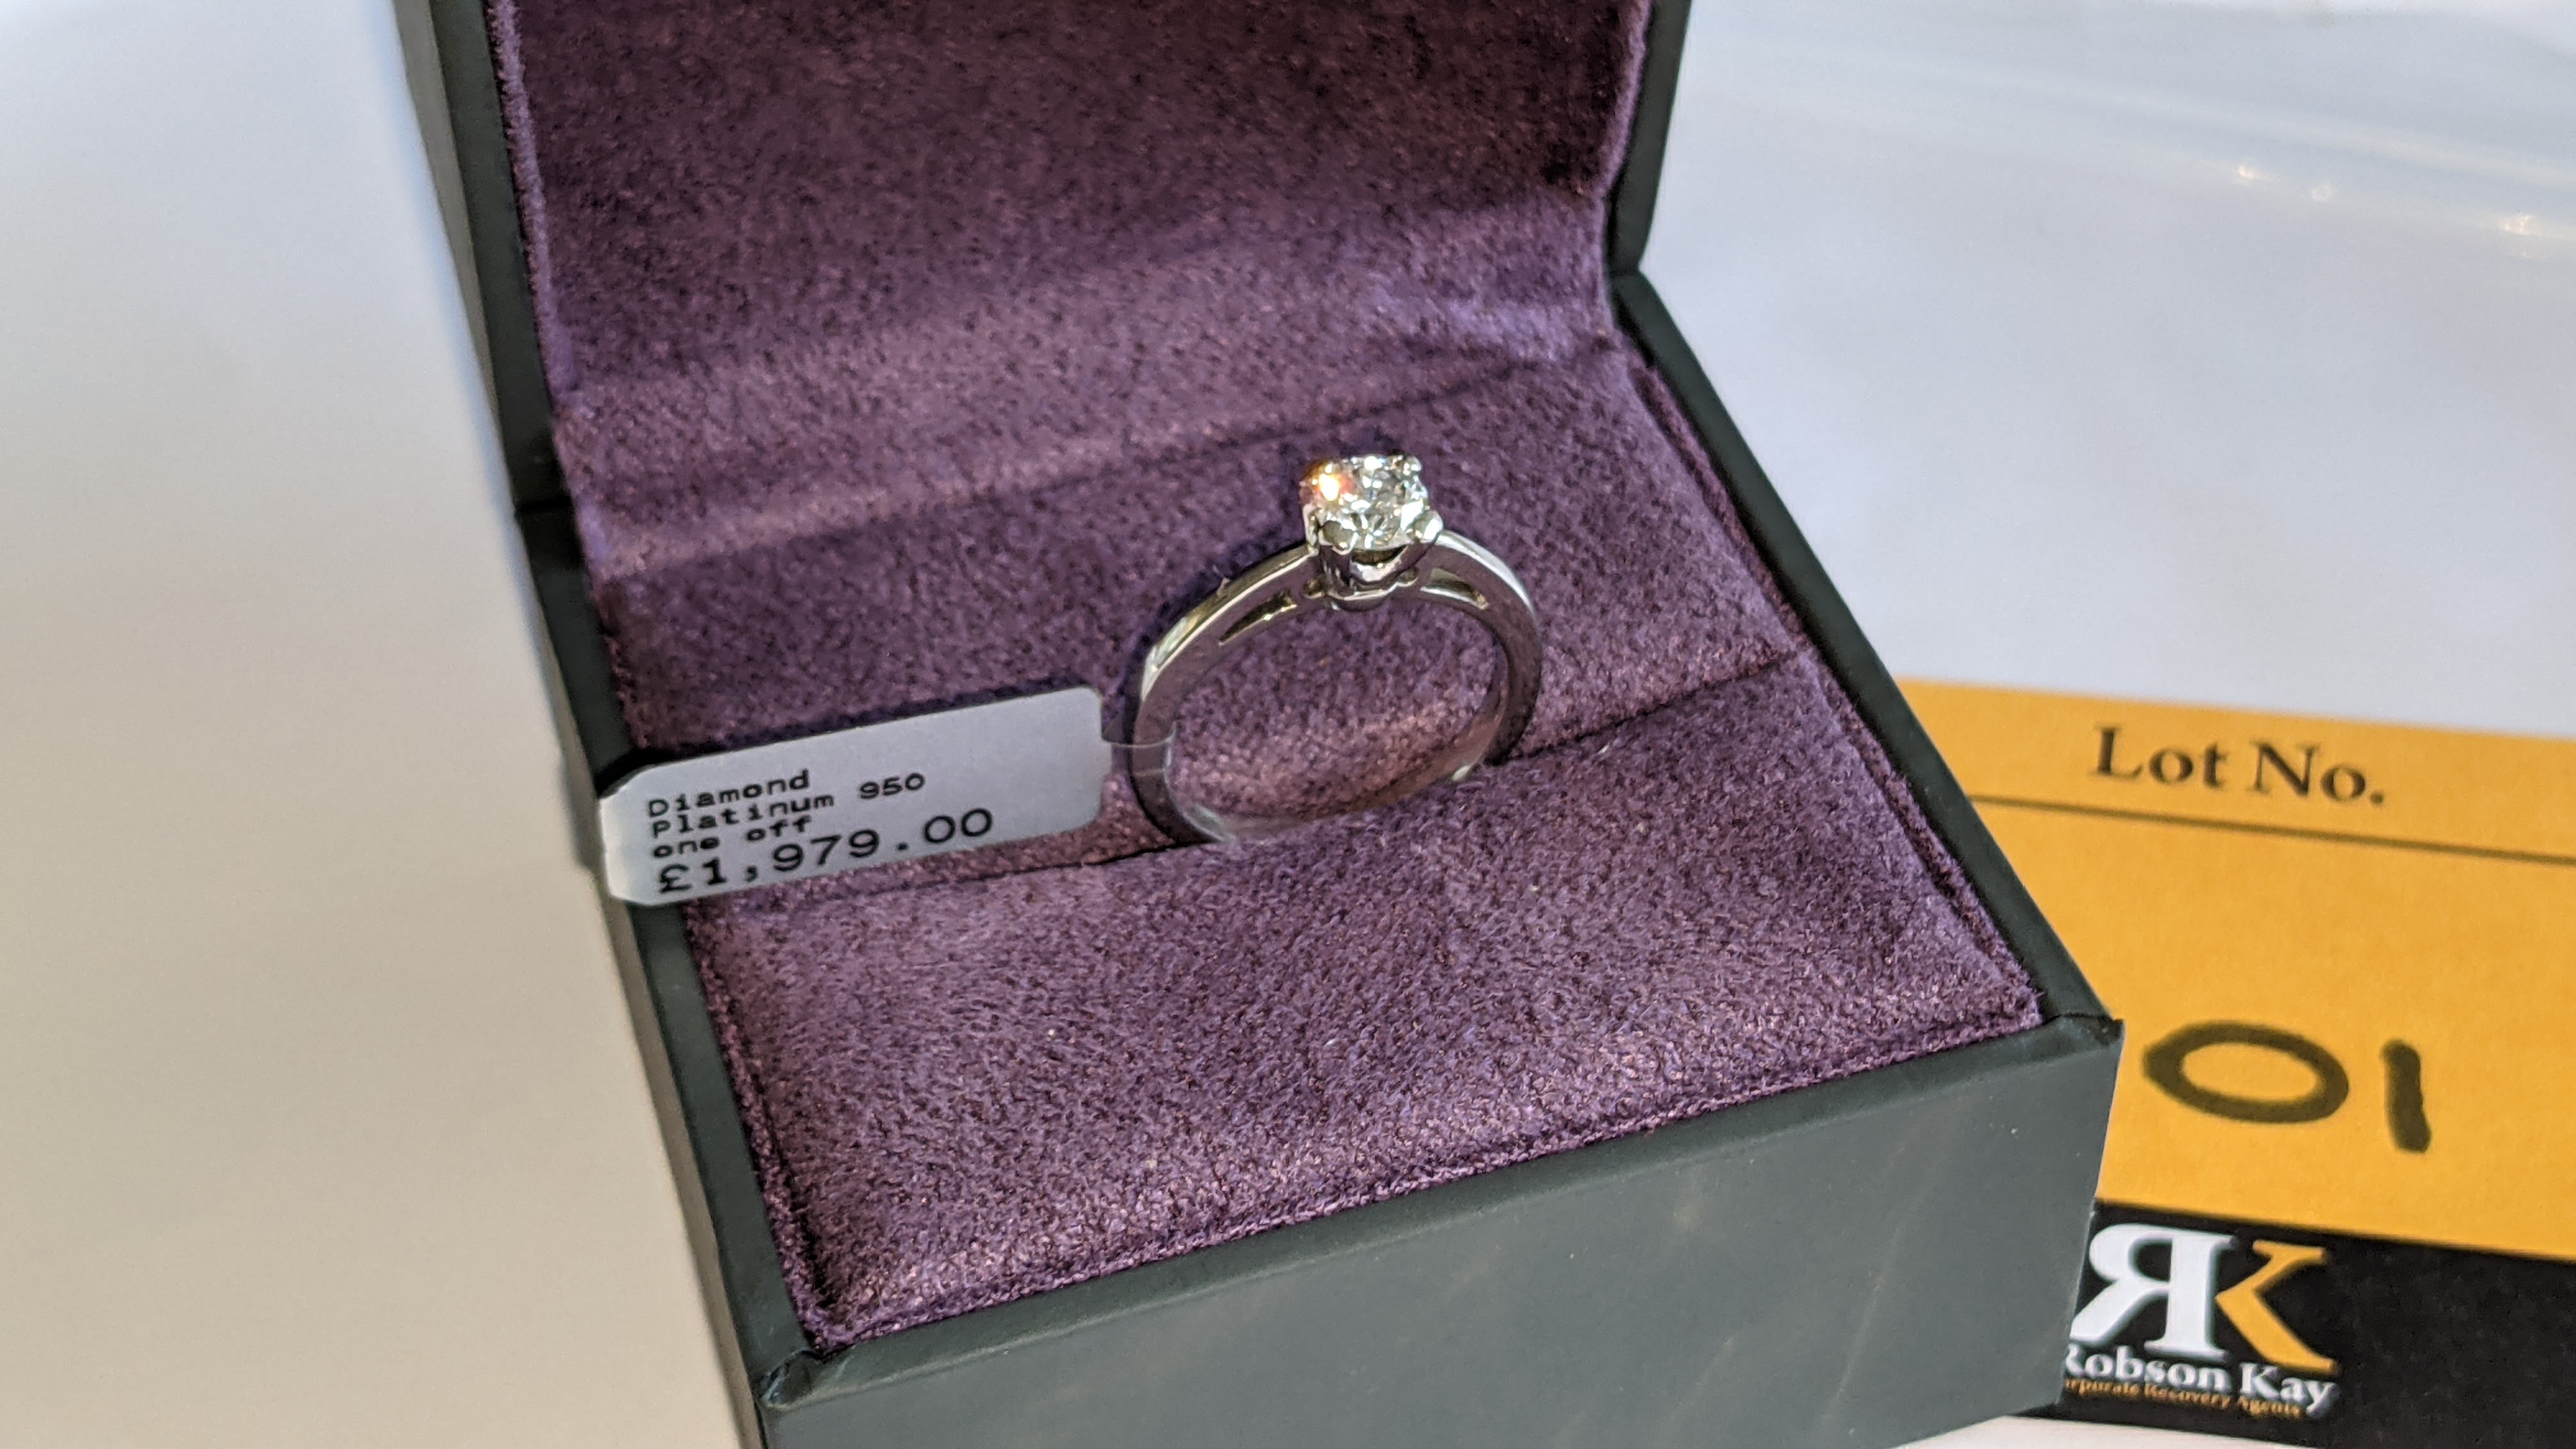 Platinum 950 ring with 0.50ct diamond. Includes diamond report/certification indicating the central - Image 2 of 25